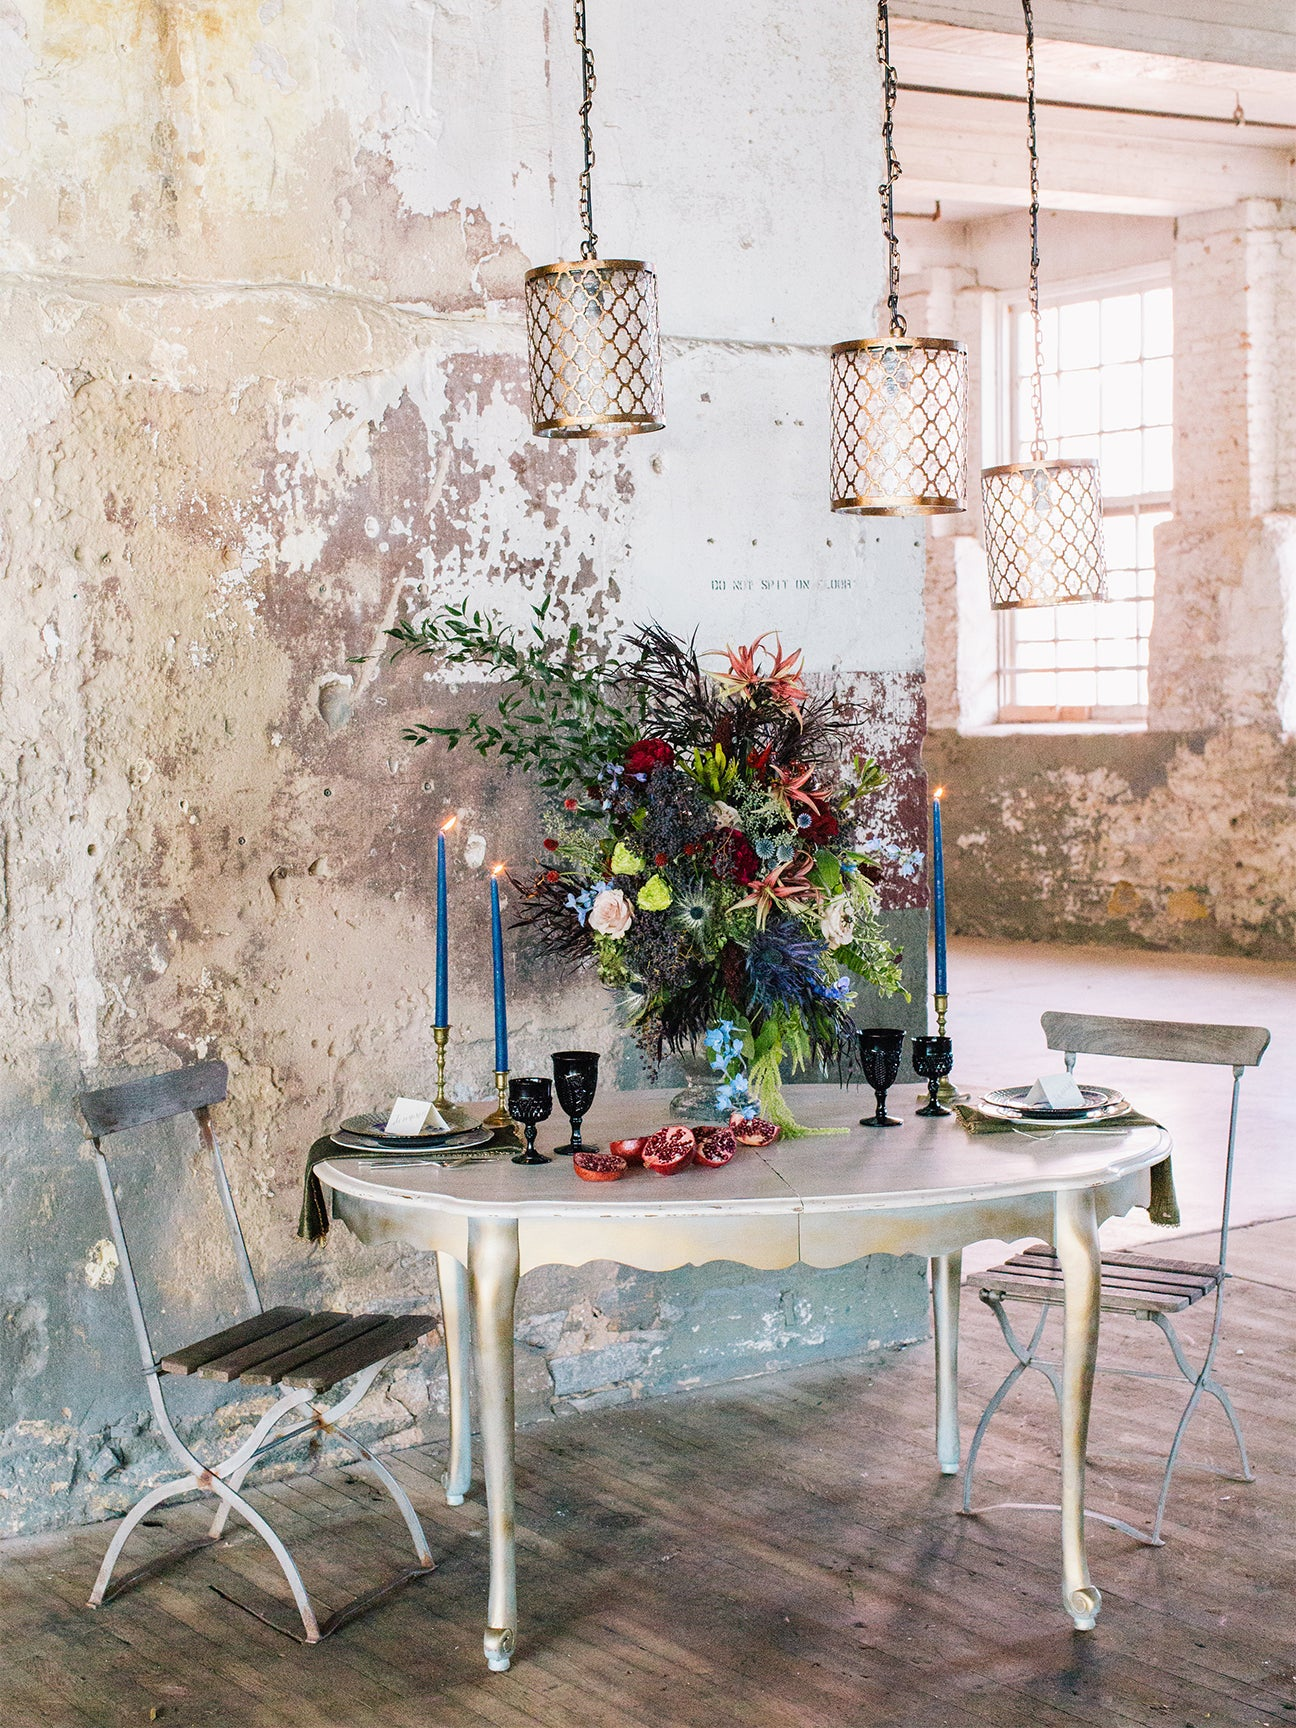 room with textured walls and floors, a small table and two chairs, floral arrangement and table settings